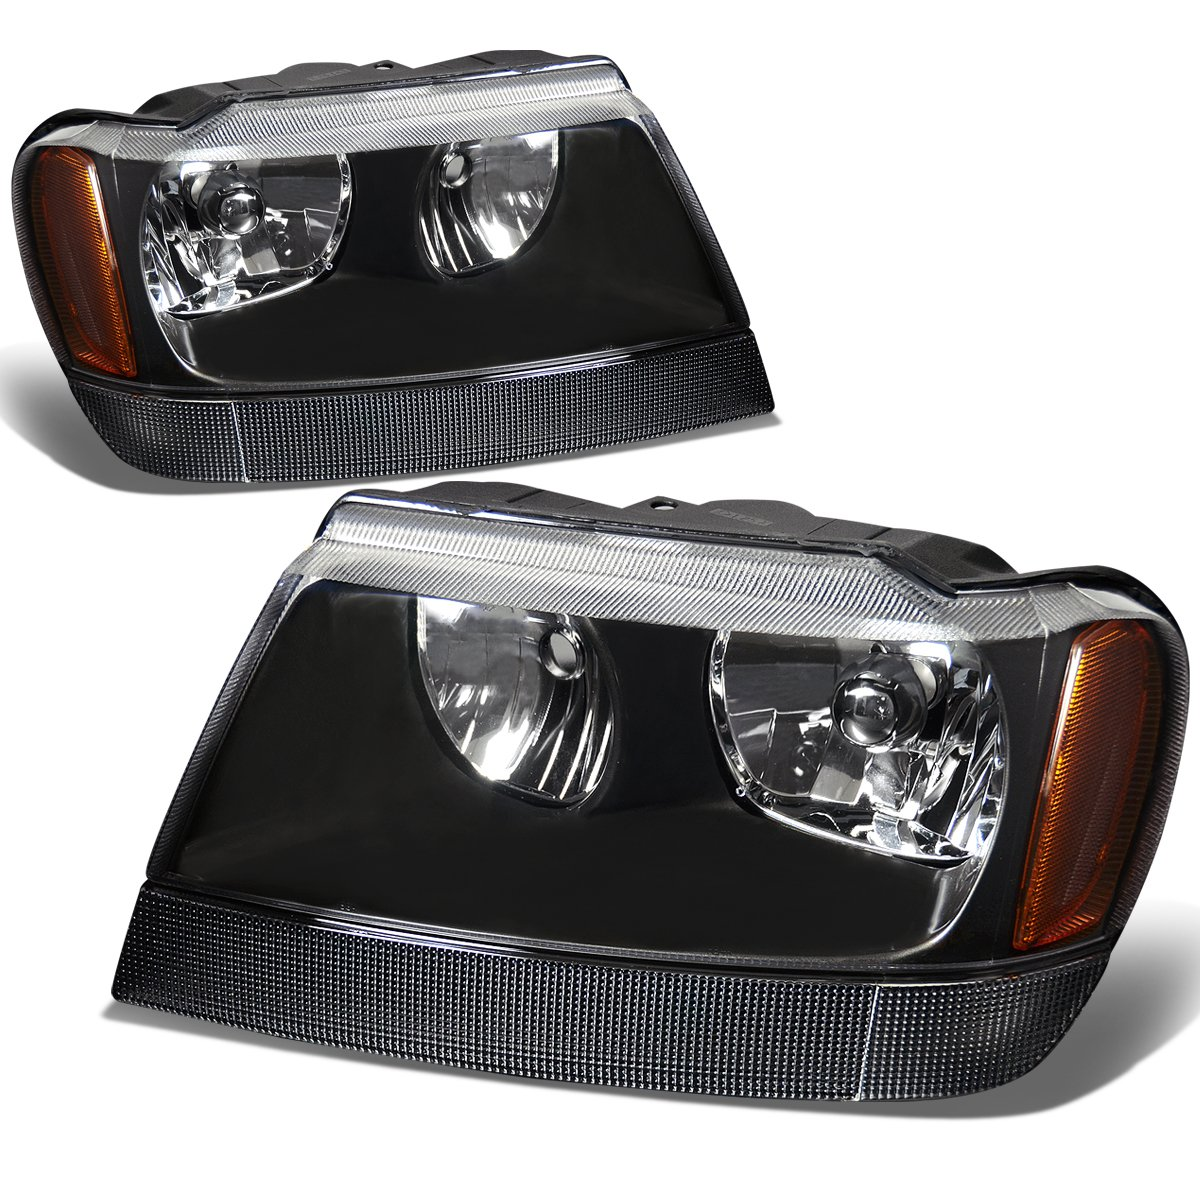 DNA Motoring HL-OH-JGC99-BK-AM Headlight Assembly, Driver and Passenger Side